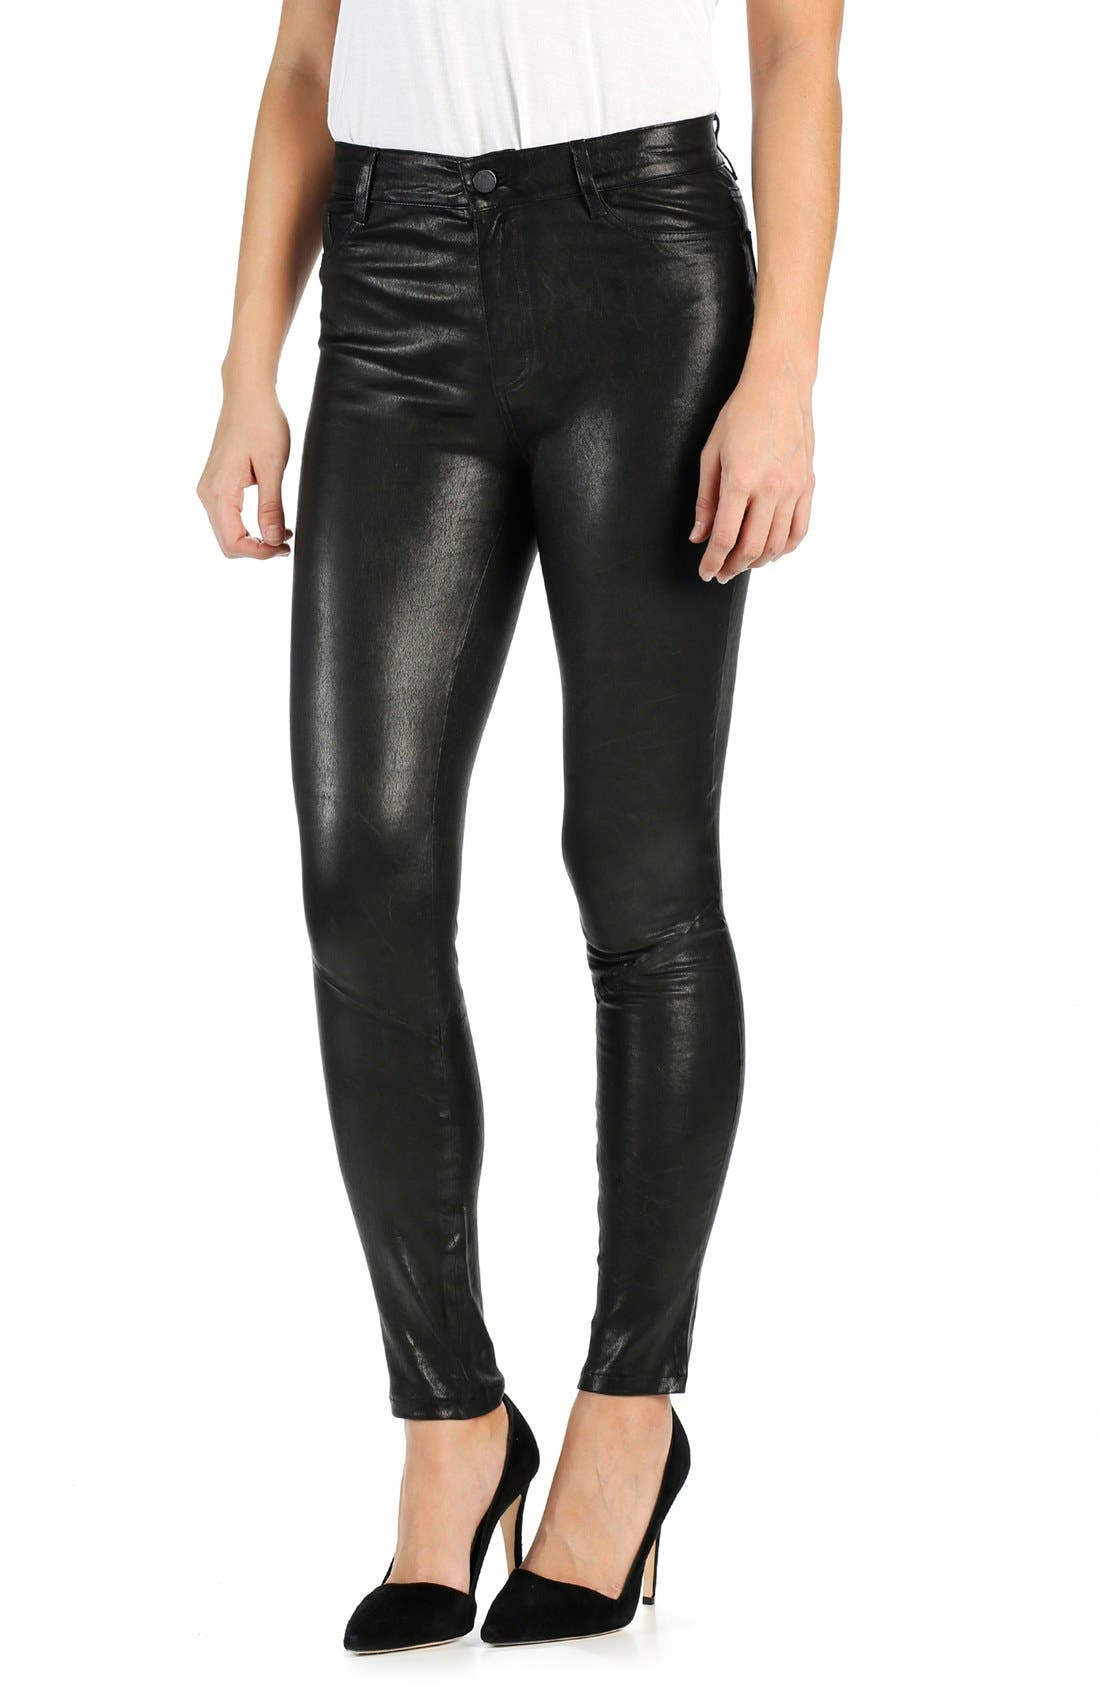 'Hoxton' High Rise Ultra Skinny Leather Pants,                         Main,                         color, BLACK